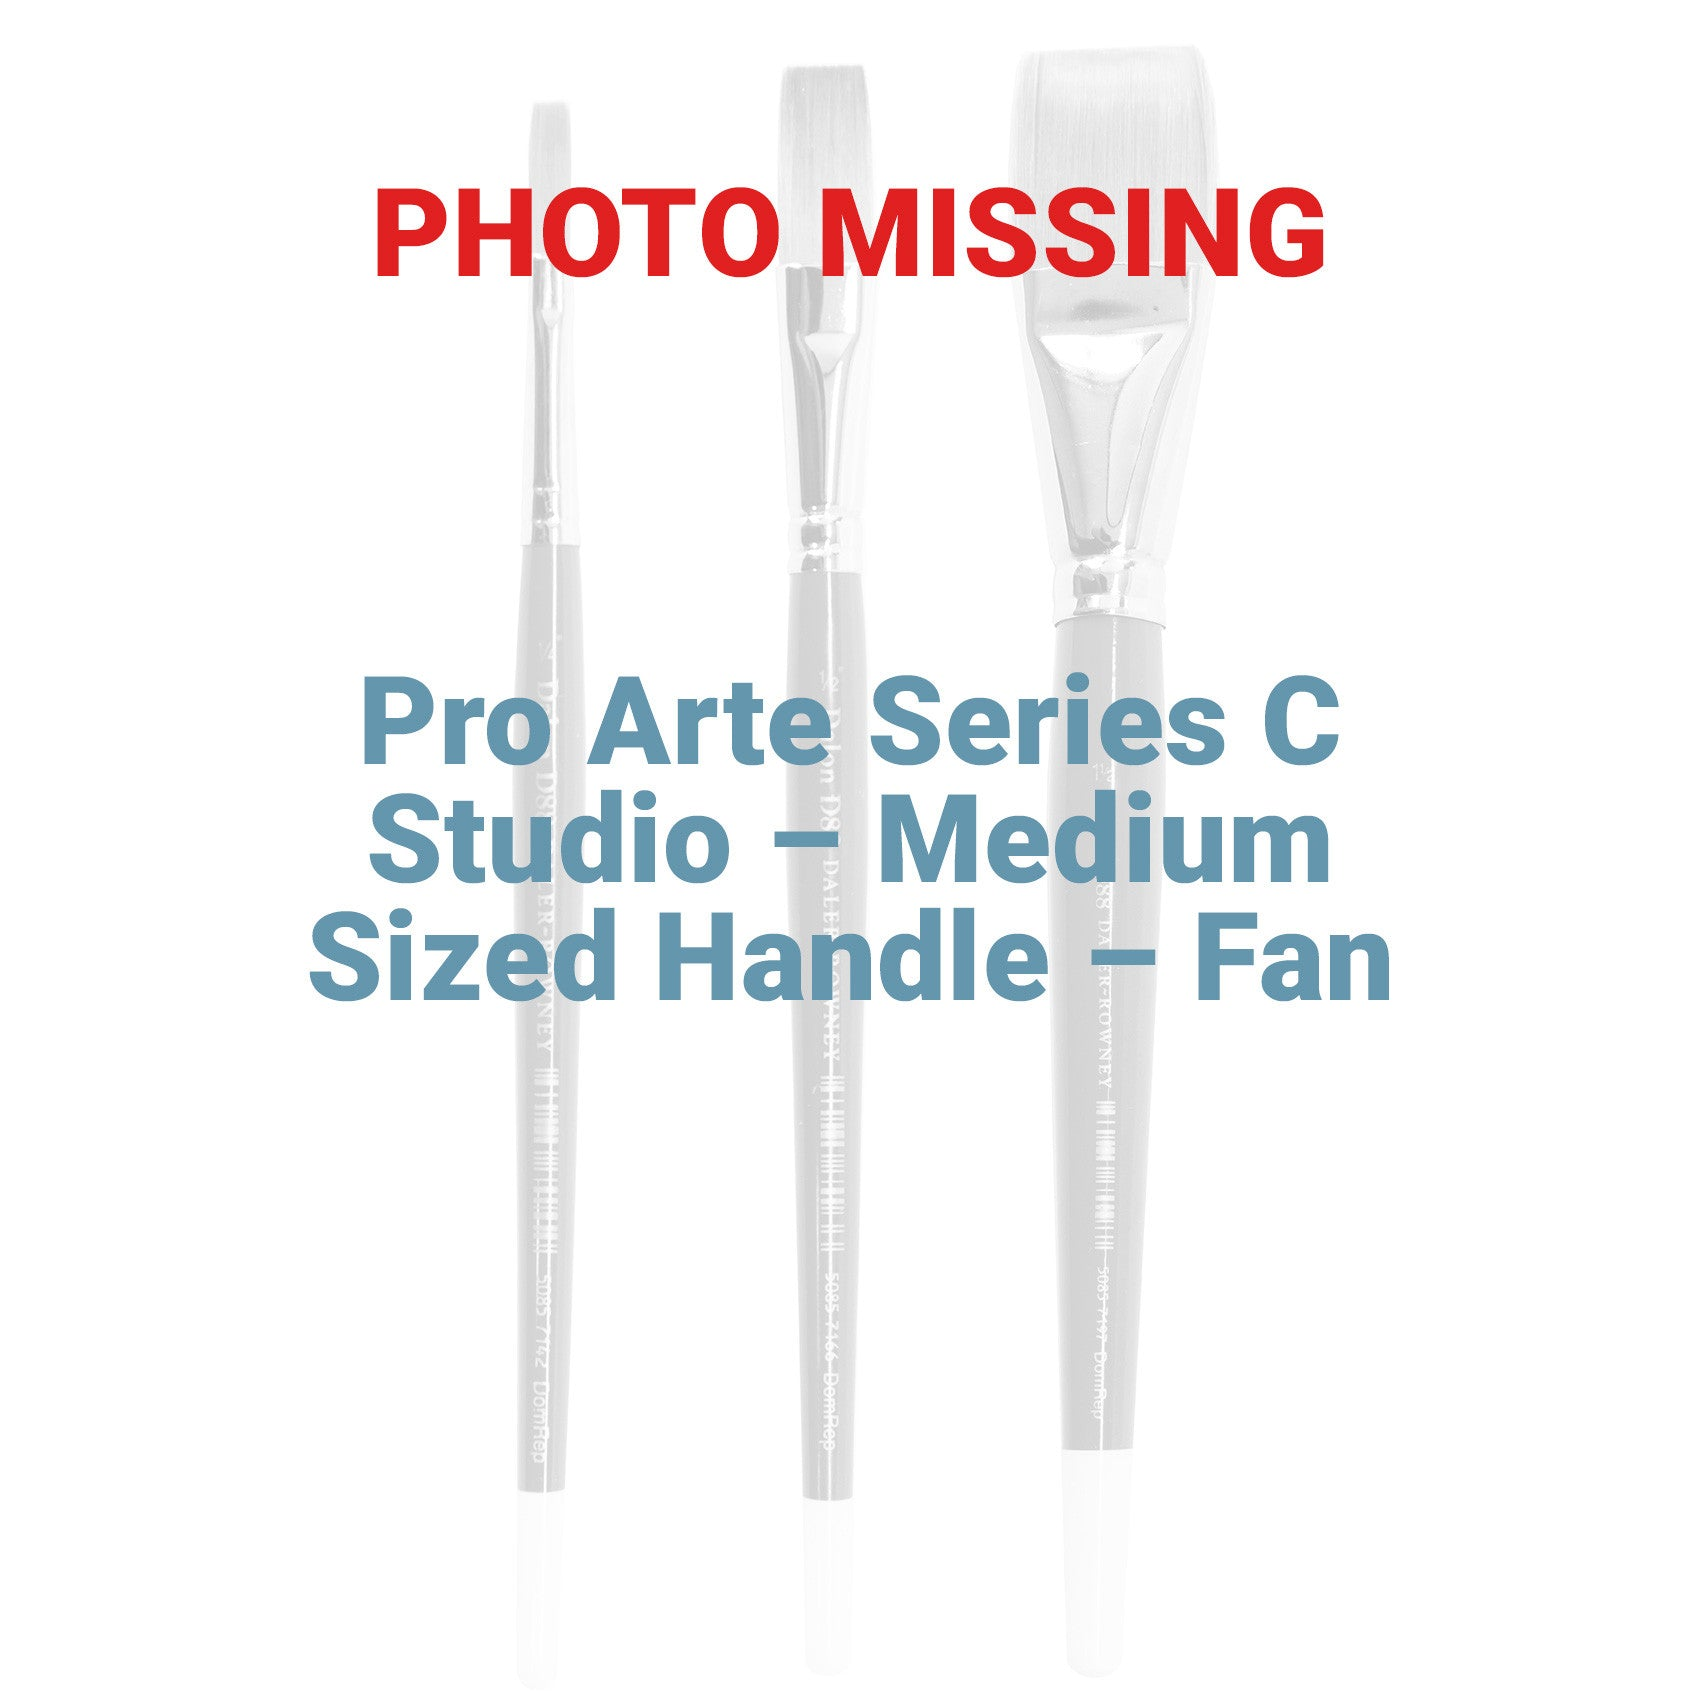 Pro Arte Series C Studio – Medium Sized Handle – Fan